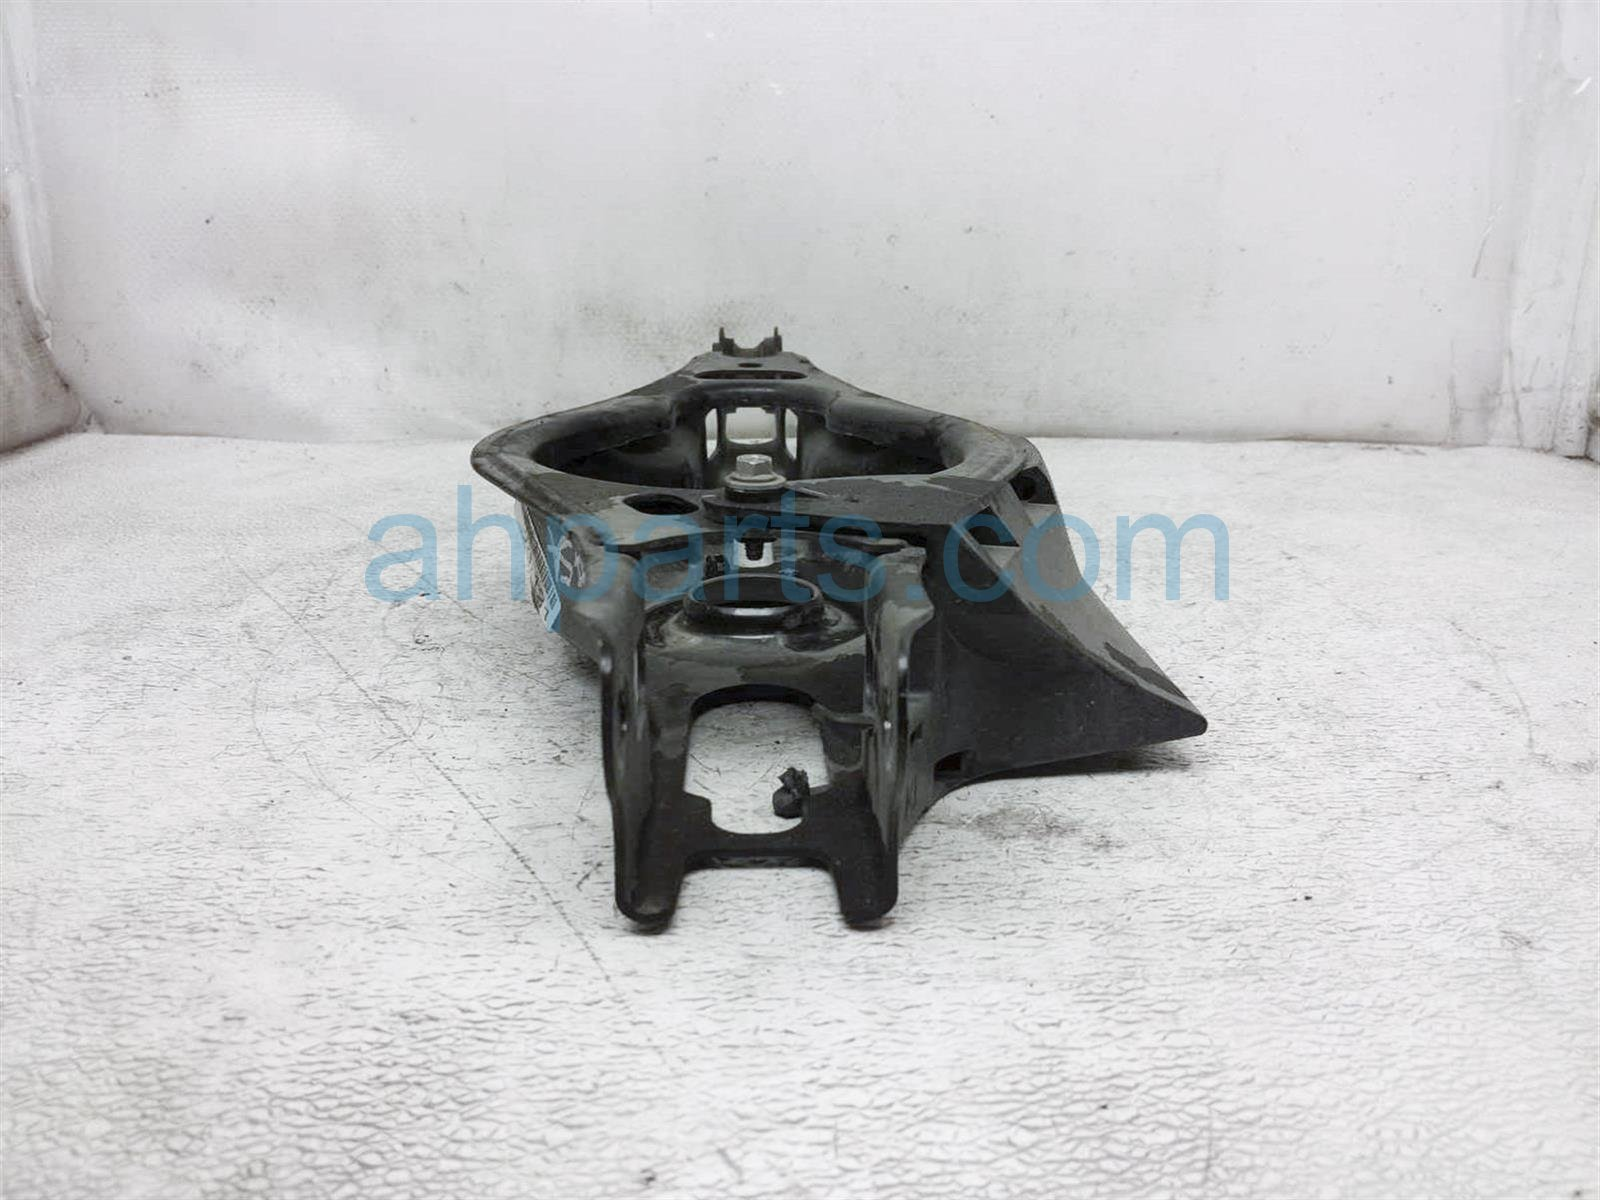 2019 Toyota Rav 4 Lower Rear Driver Spring Seat Control Arm 48730 0R050 Replacement